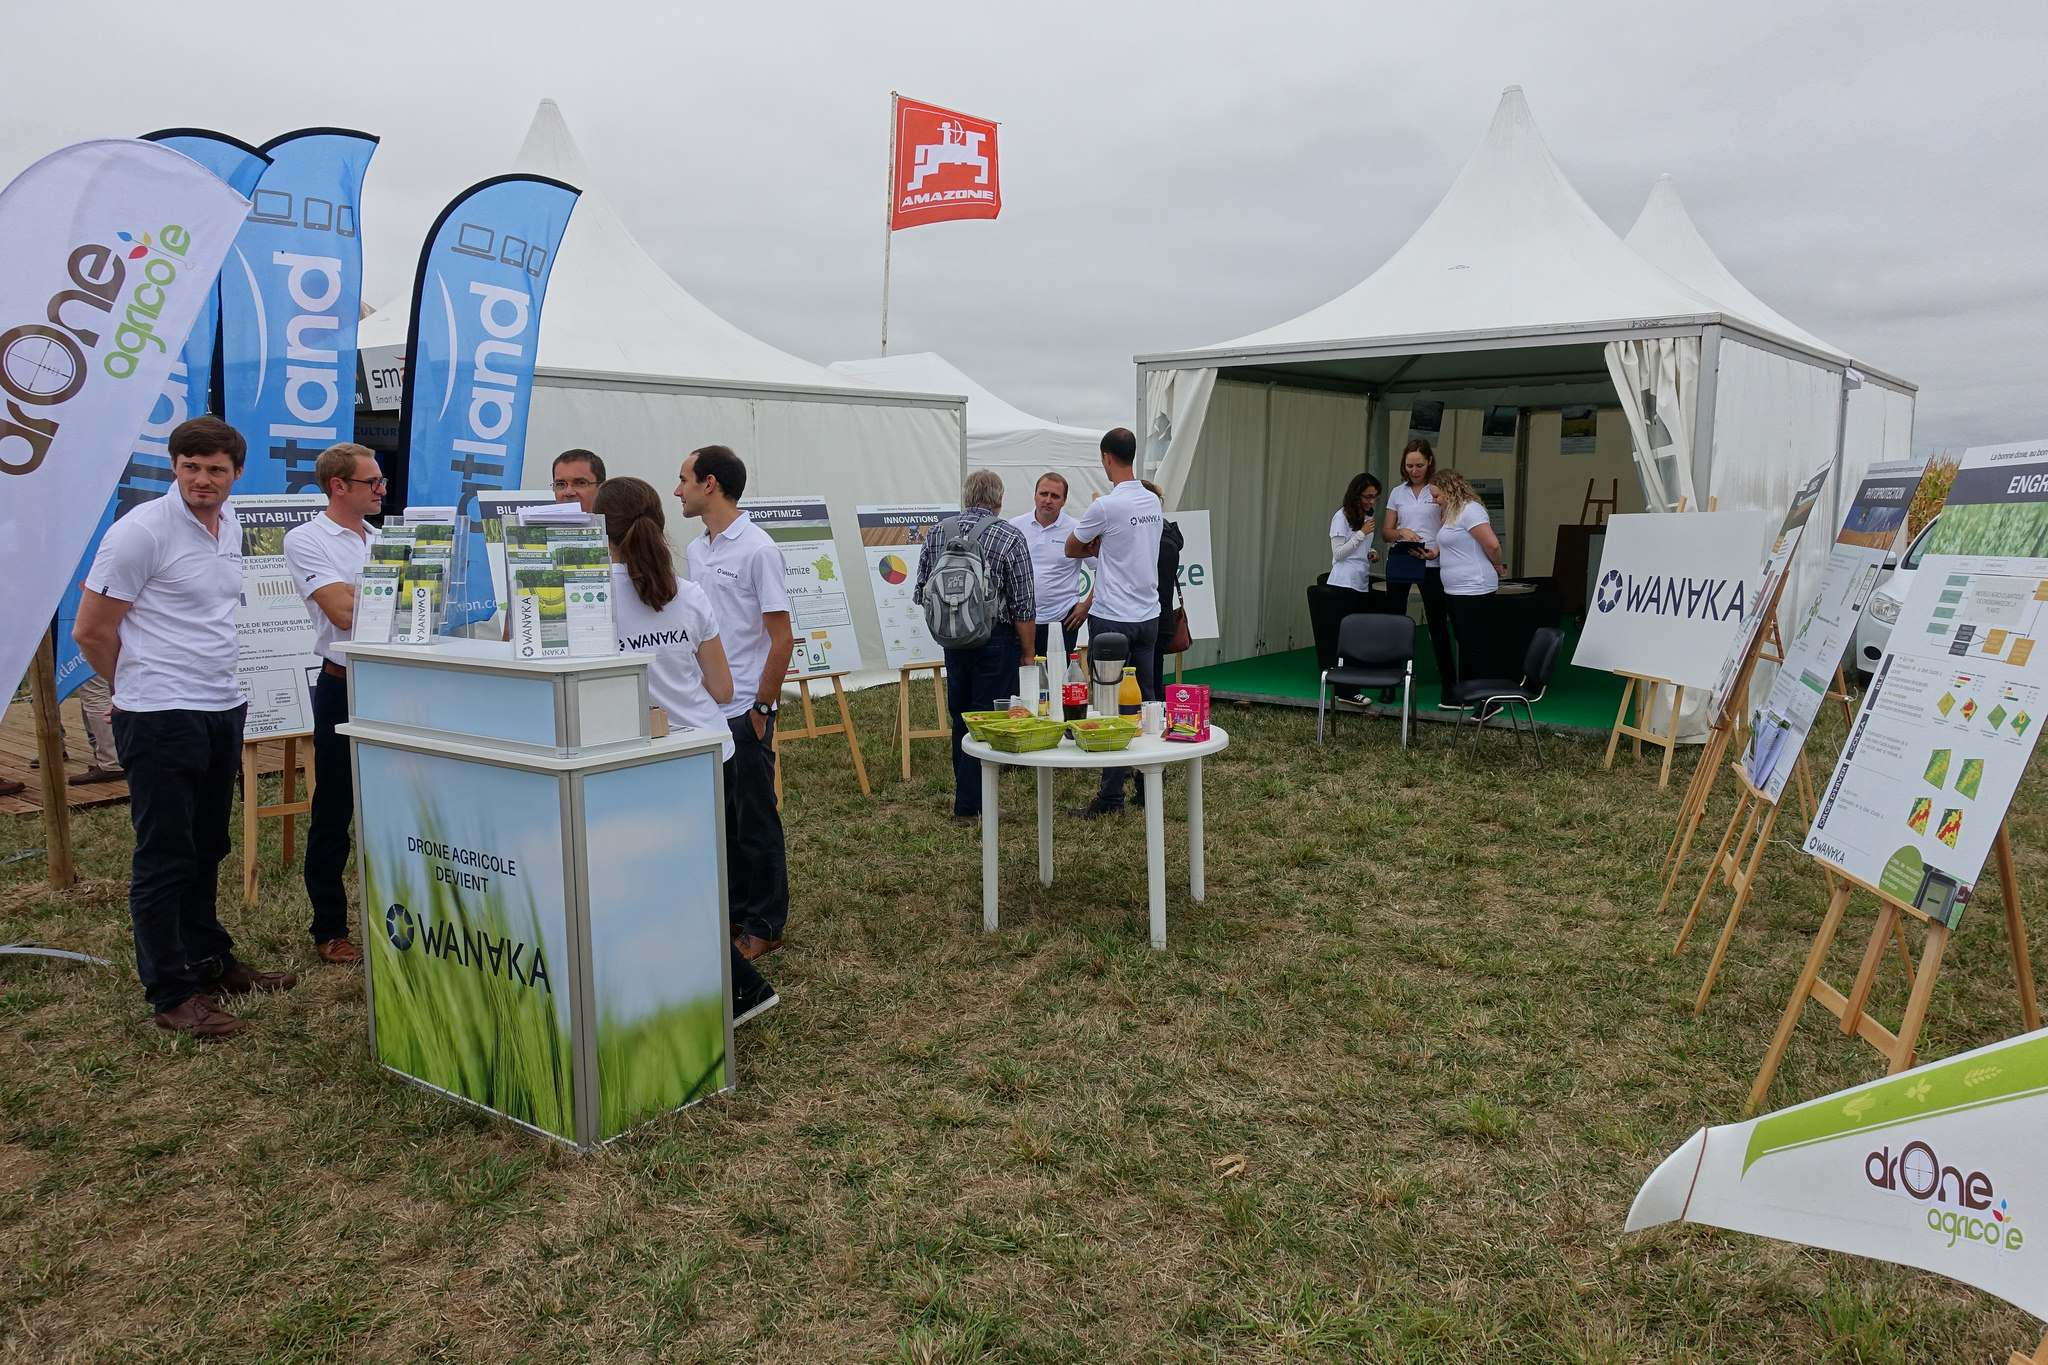 innov agri17 Innov agri 2016 Agriculture show in Outarville, France